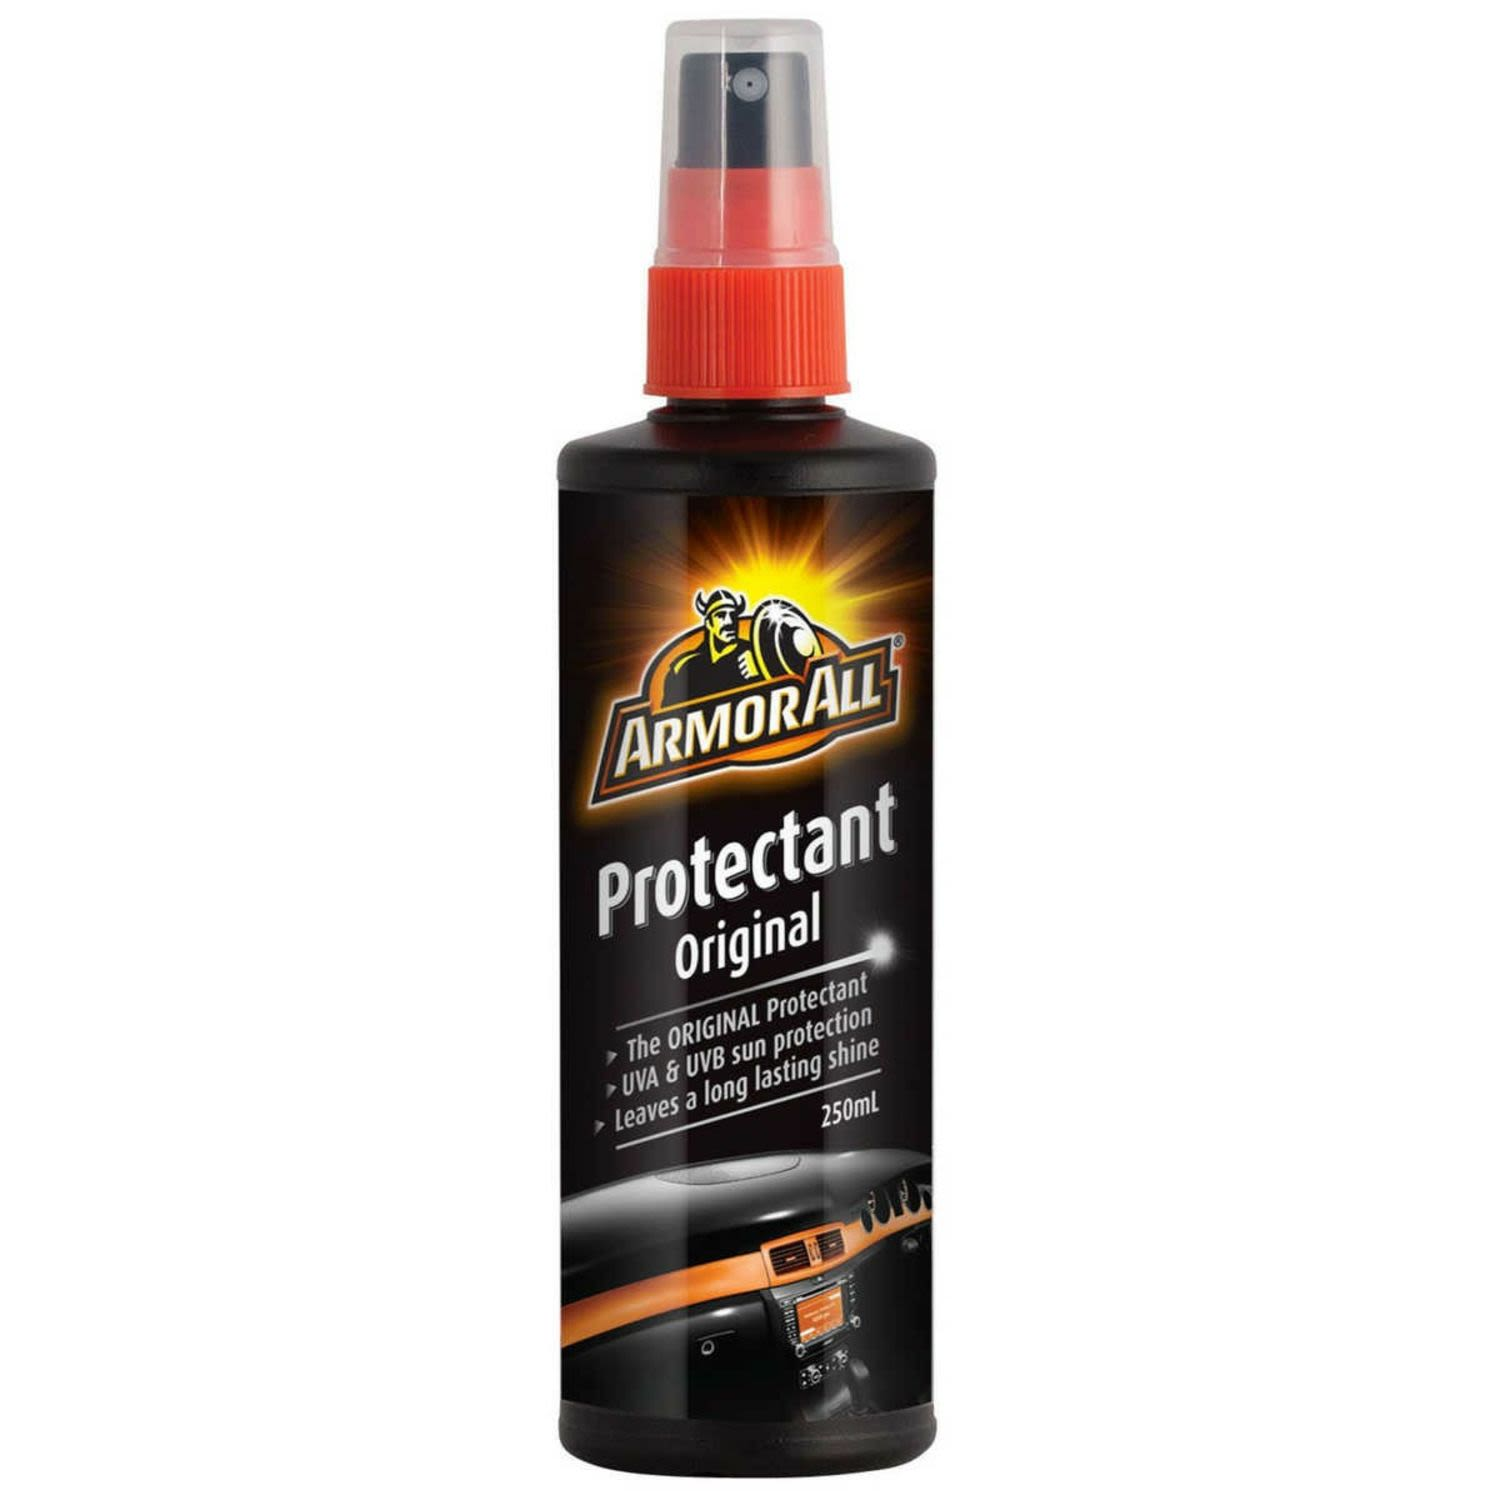 Armor All Protectant, 250 Millilitre